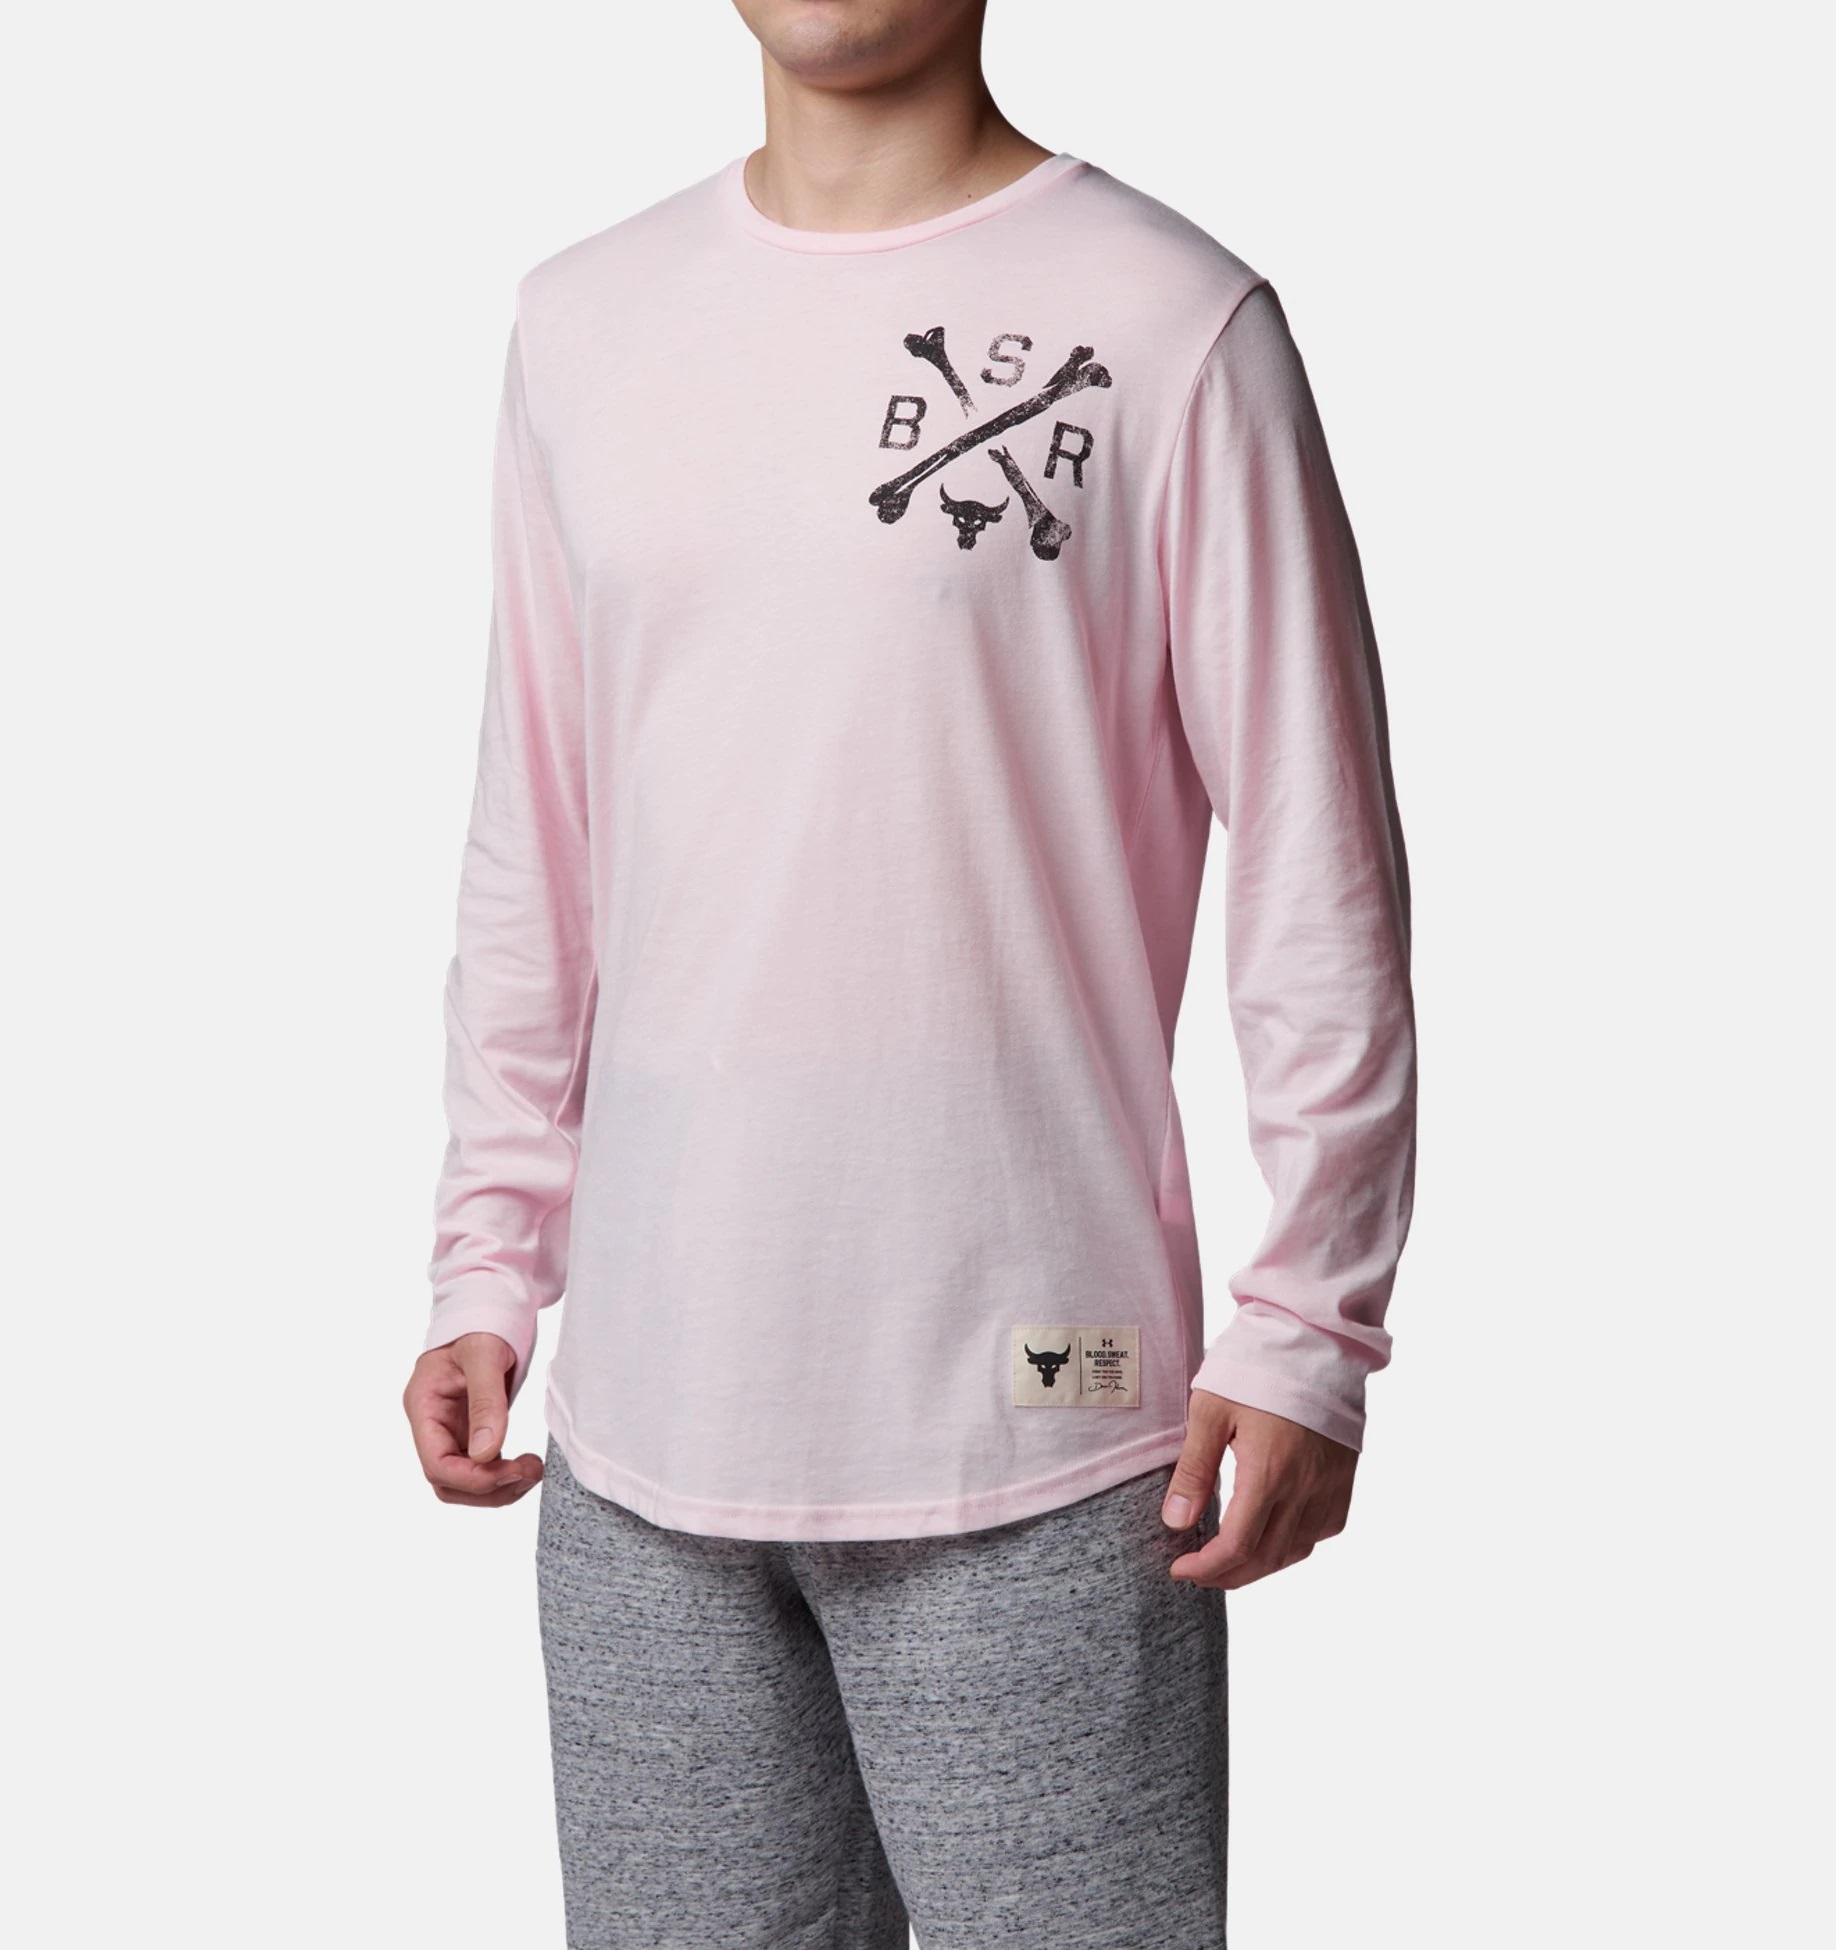 Under Armour アンダーアーマー Project Rock BSR Long Sleeve プロジェクト ロック ロングスリーブ Tシャツ メンズ 取り寄せ商品